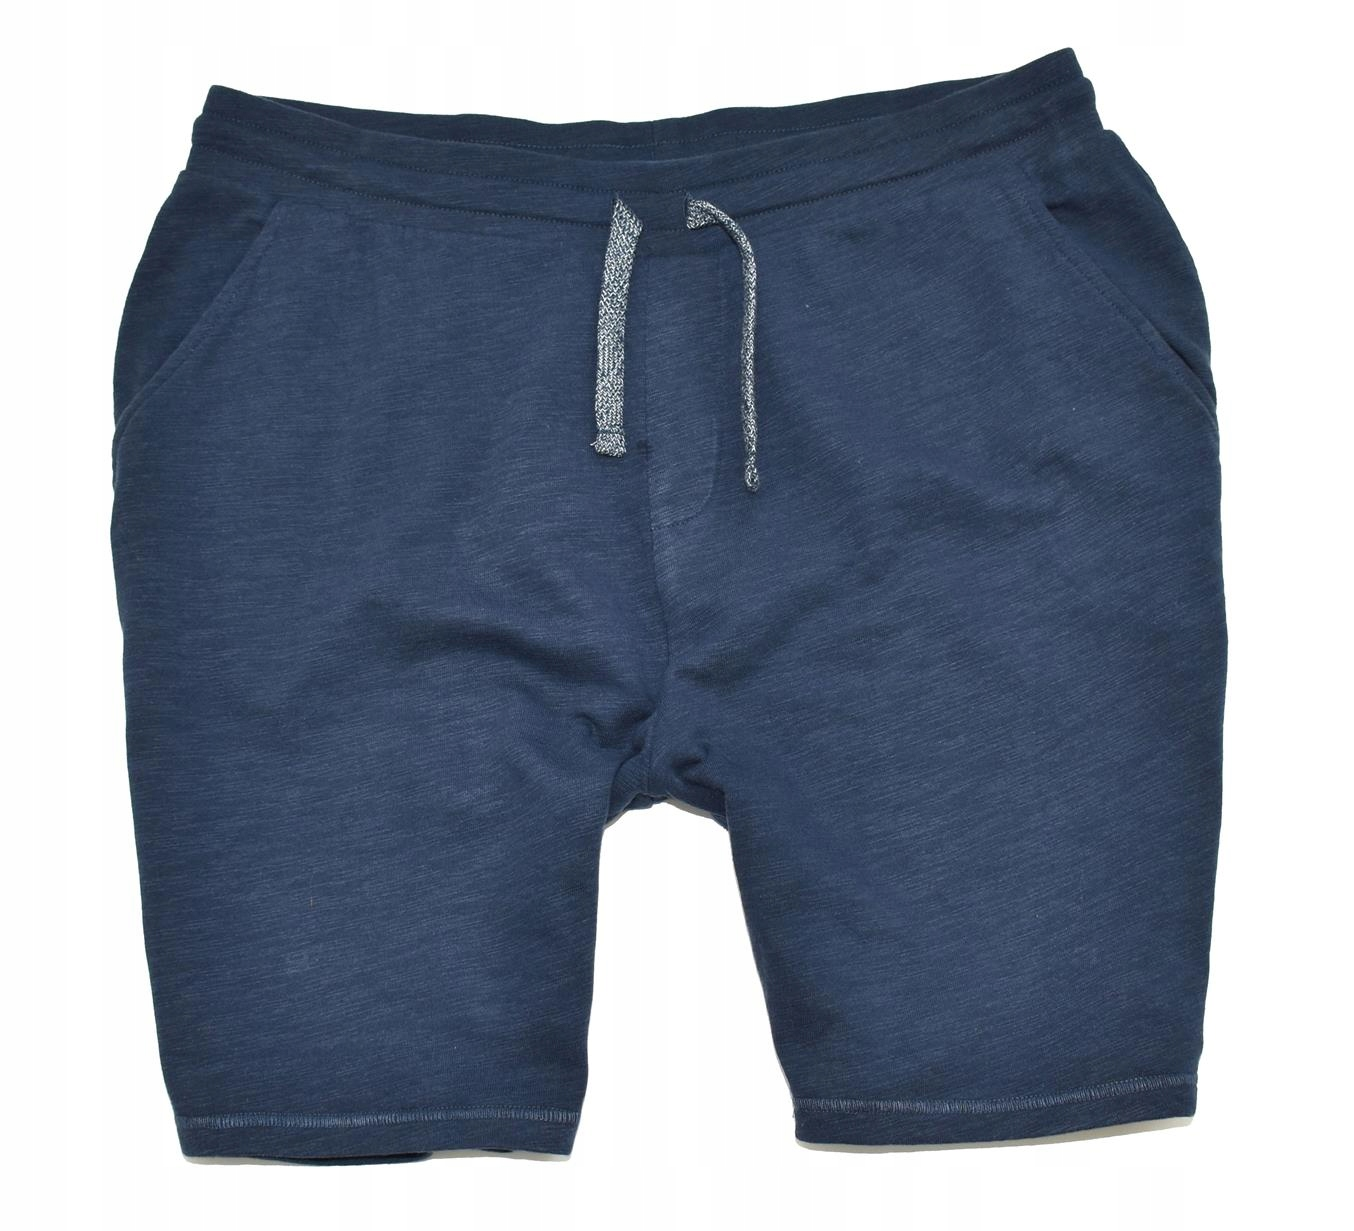 MM 135 GEORGE_ORYGINAL NAVY COTTON SHORTS_XXL